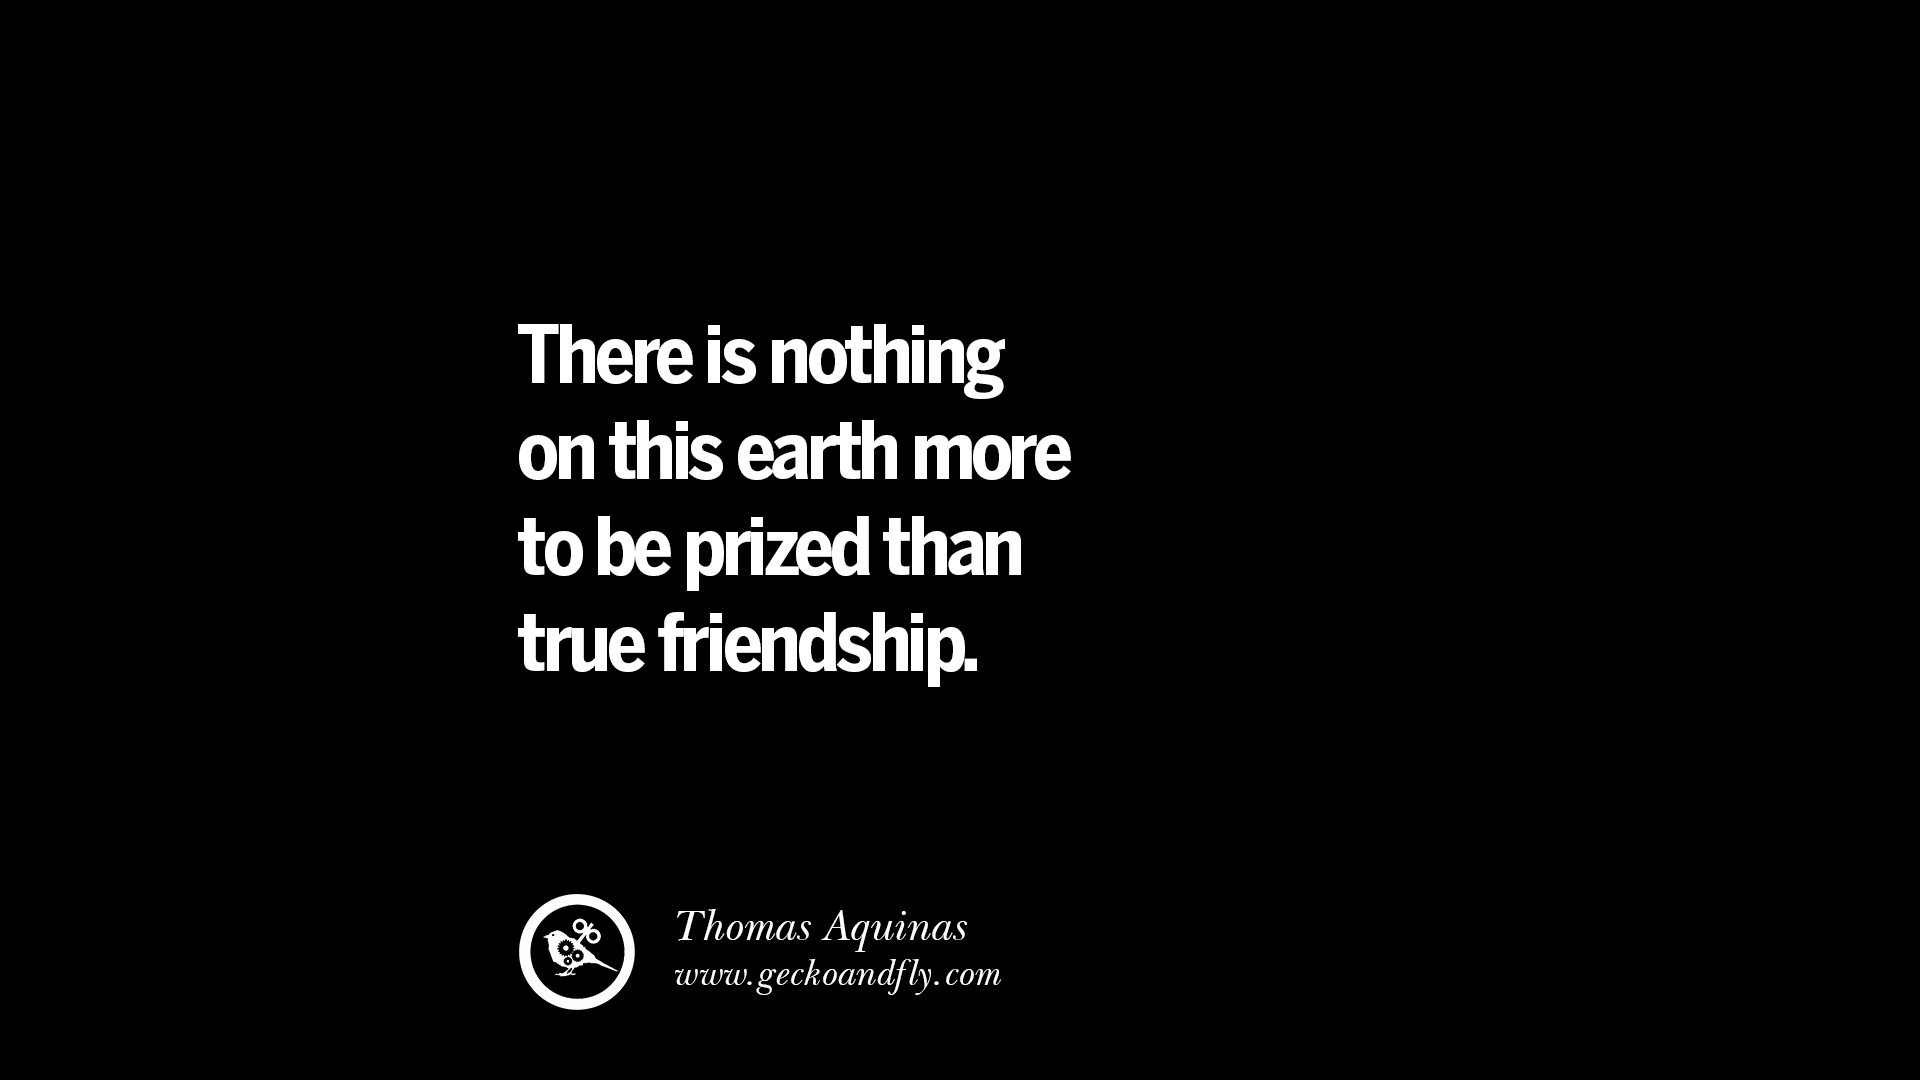 Wise Quotes About Friendship Quotes On Friendship And Love  Business Quotes